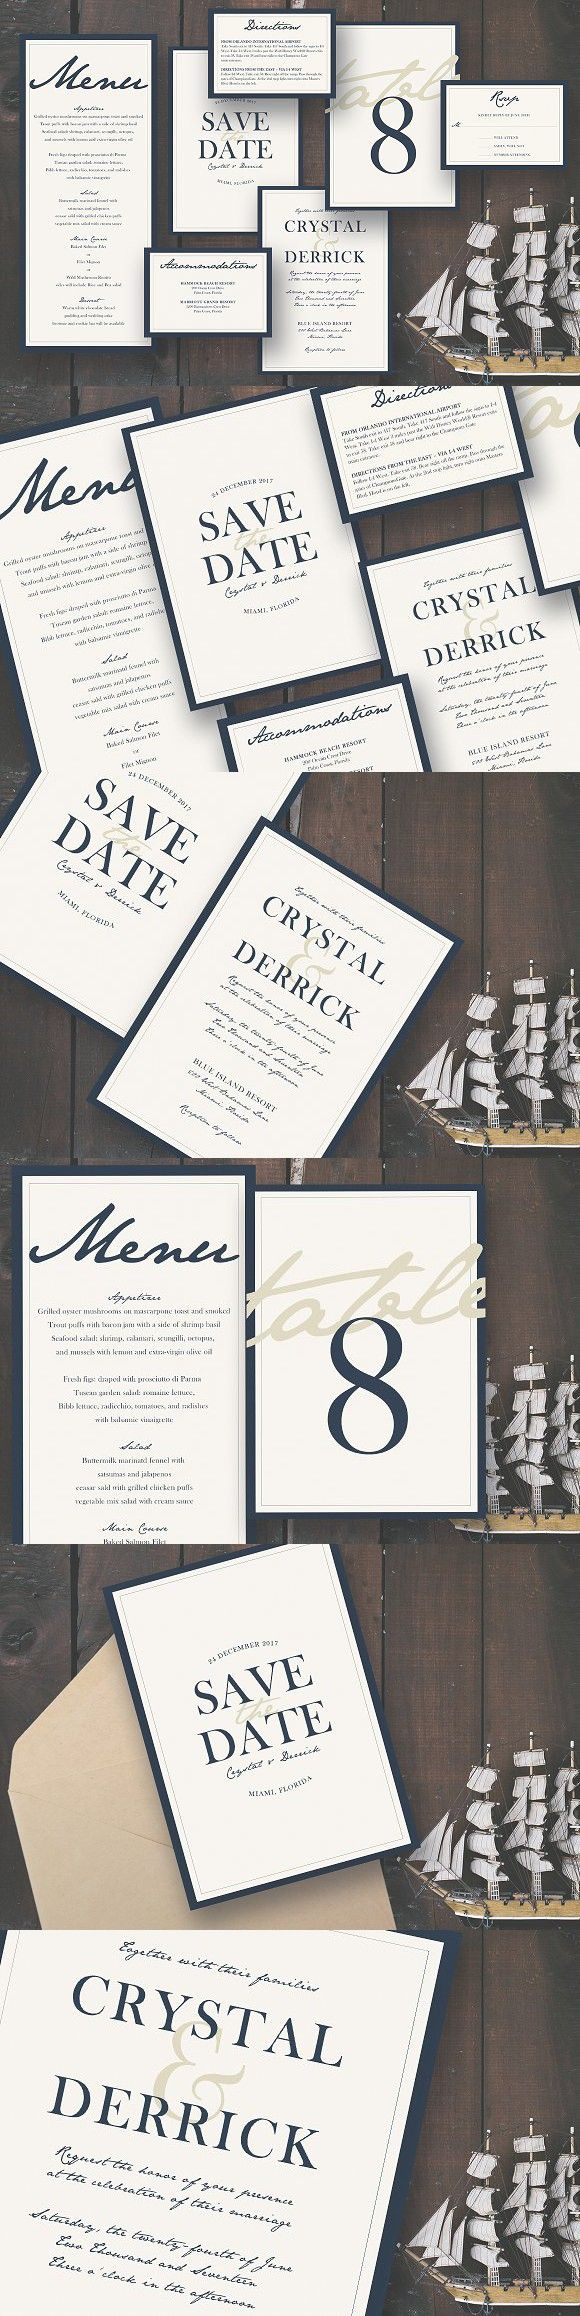 templates for wedding card design%0A Deep Blue Sea Wedding Suite  Wedding Invitation TemplatesWedding